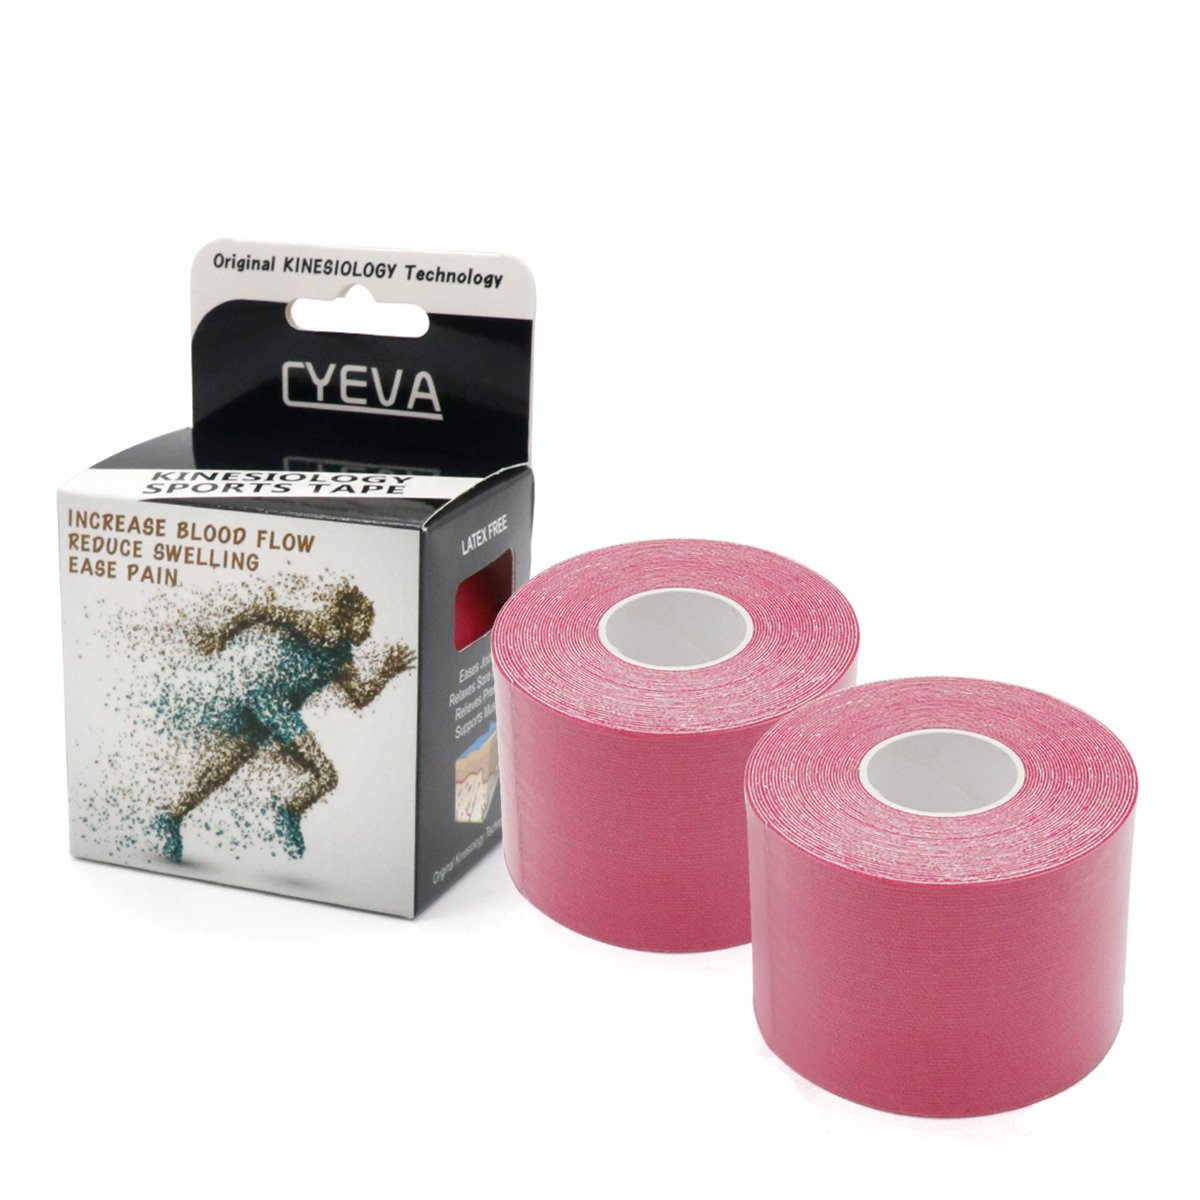 FDA Approved Elastic Kinesiology Therapeutic Tape Supporting Tapes for Athletic Muscles Compression to Promote Recovery 2 Rolls/pk Pink